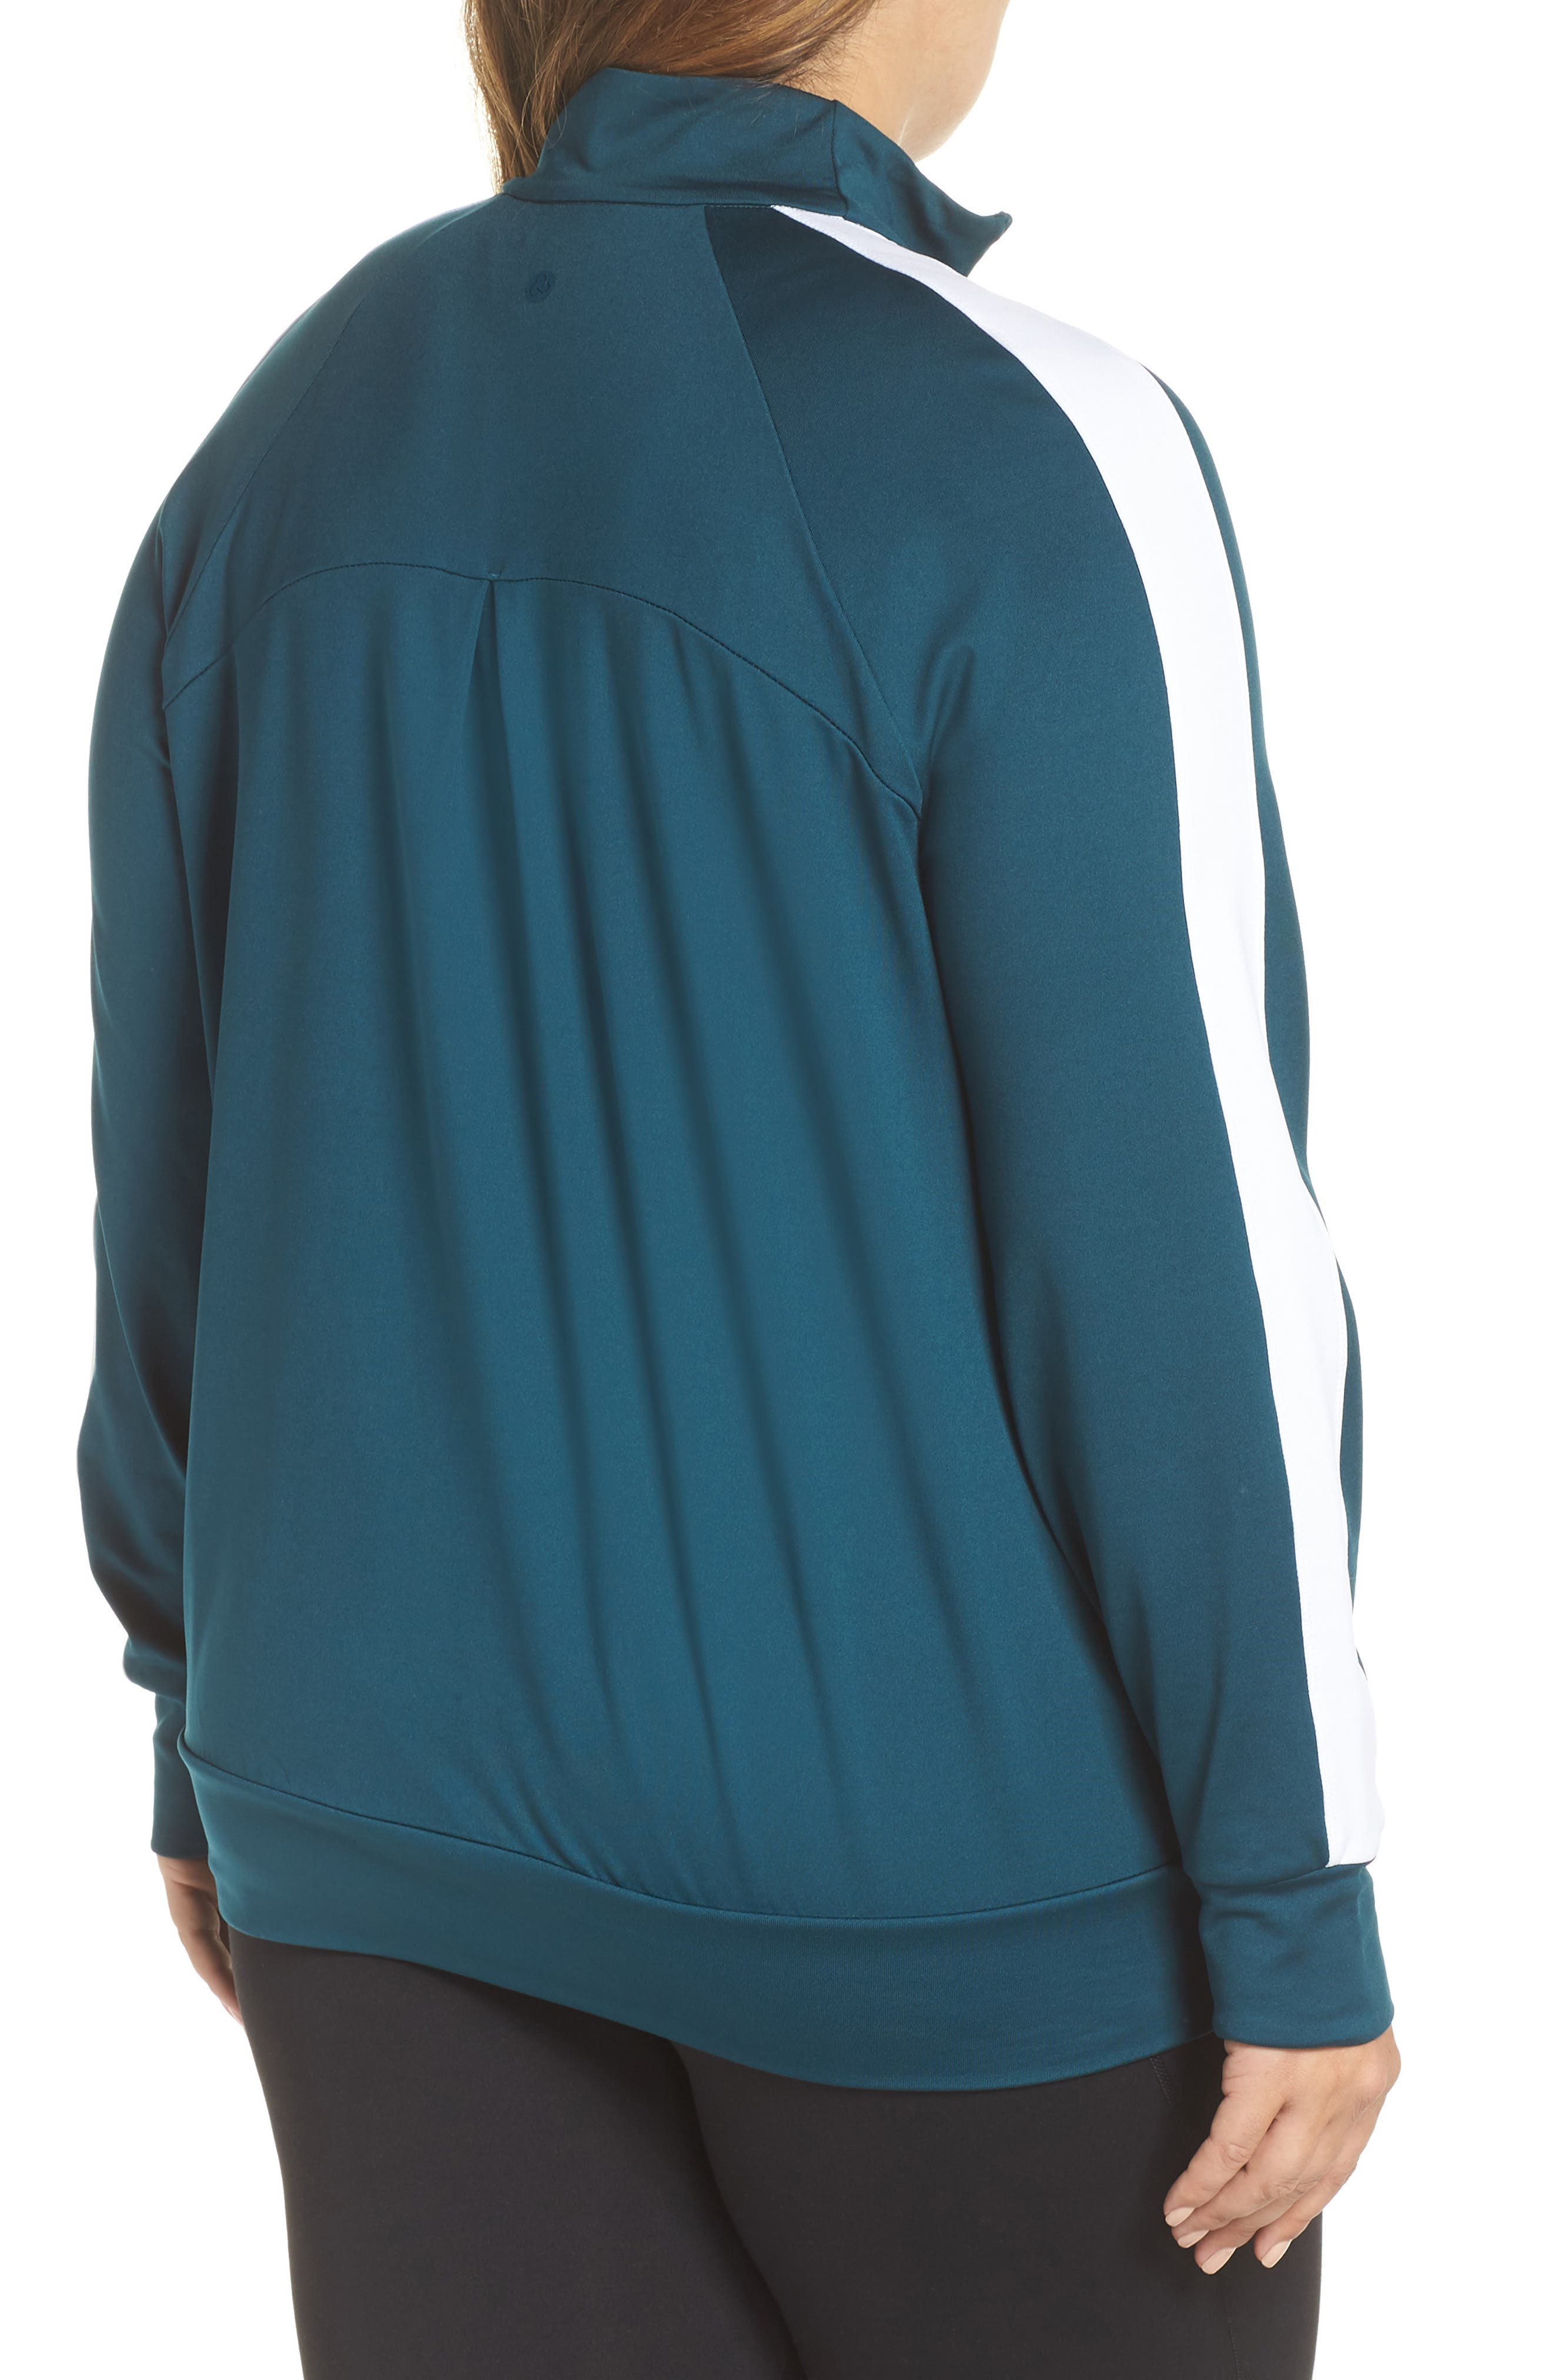 Taylor Track Jacket,                             Alternate thumbnail 2, color,                             TEAL ABYSS